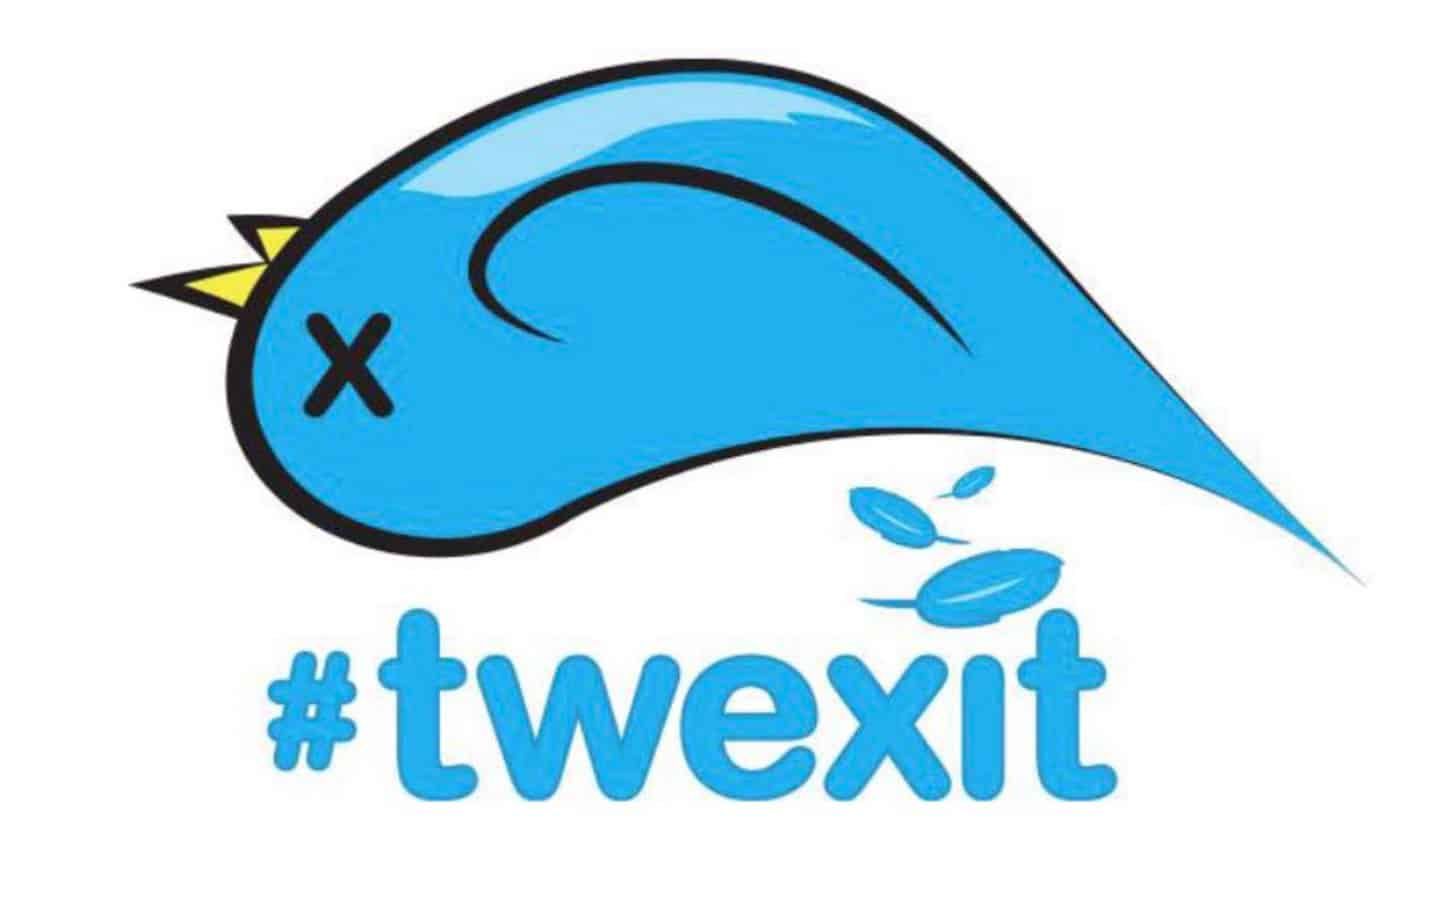 #Twexit – Why are thousands moving to new social media platforms?